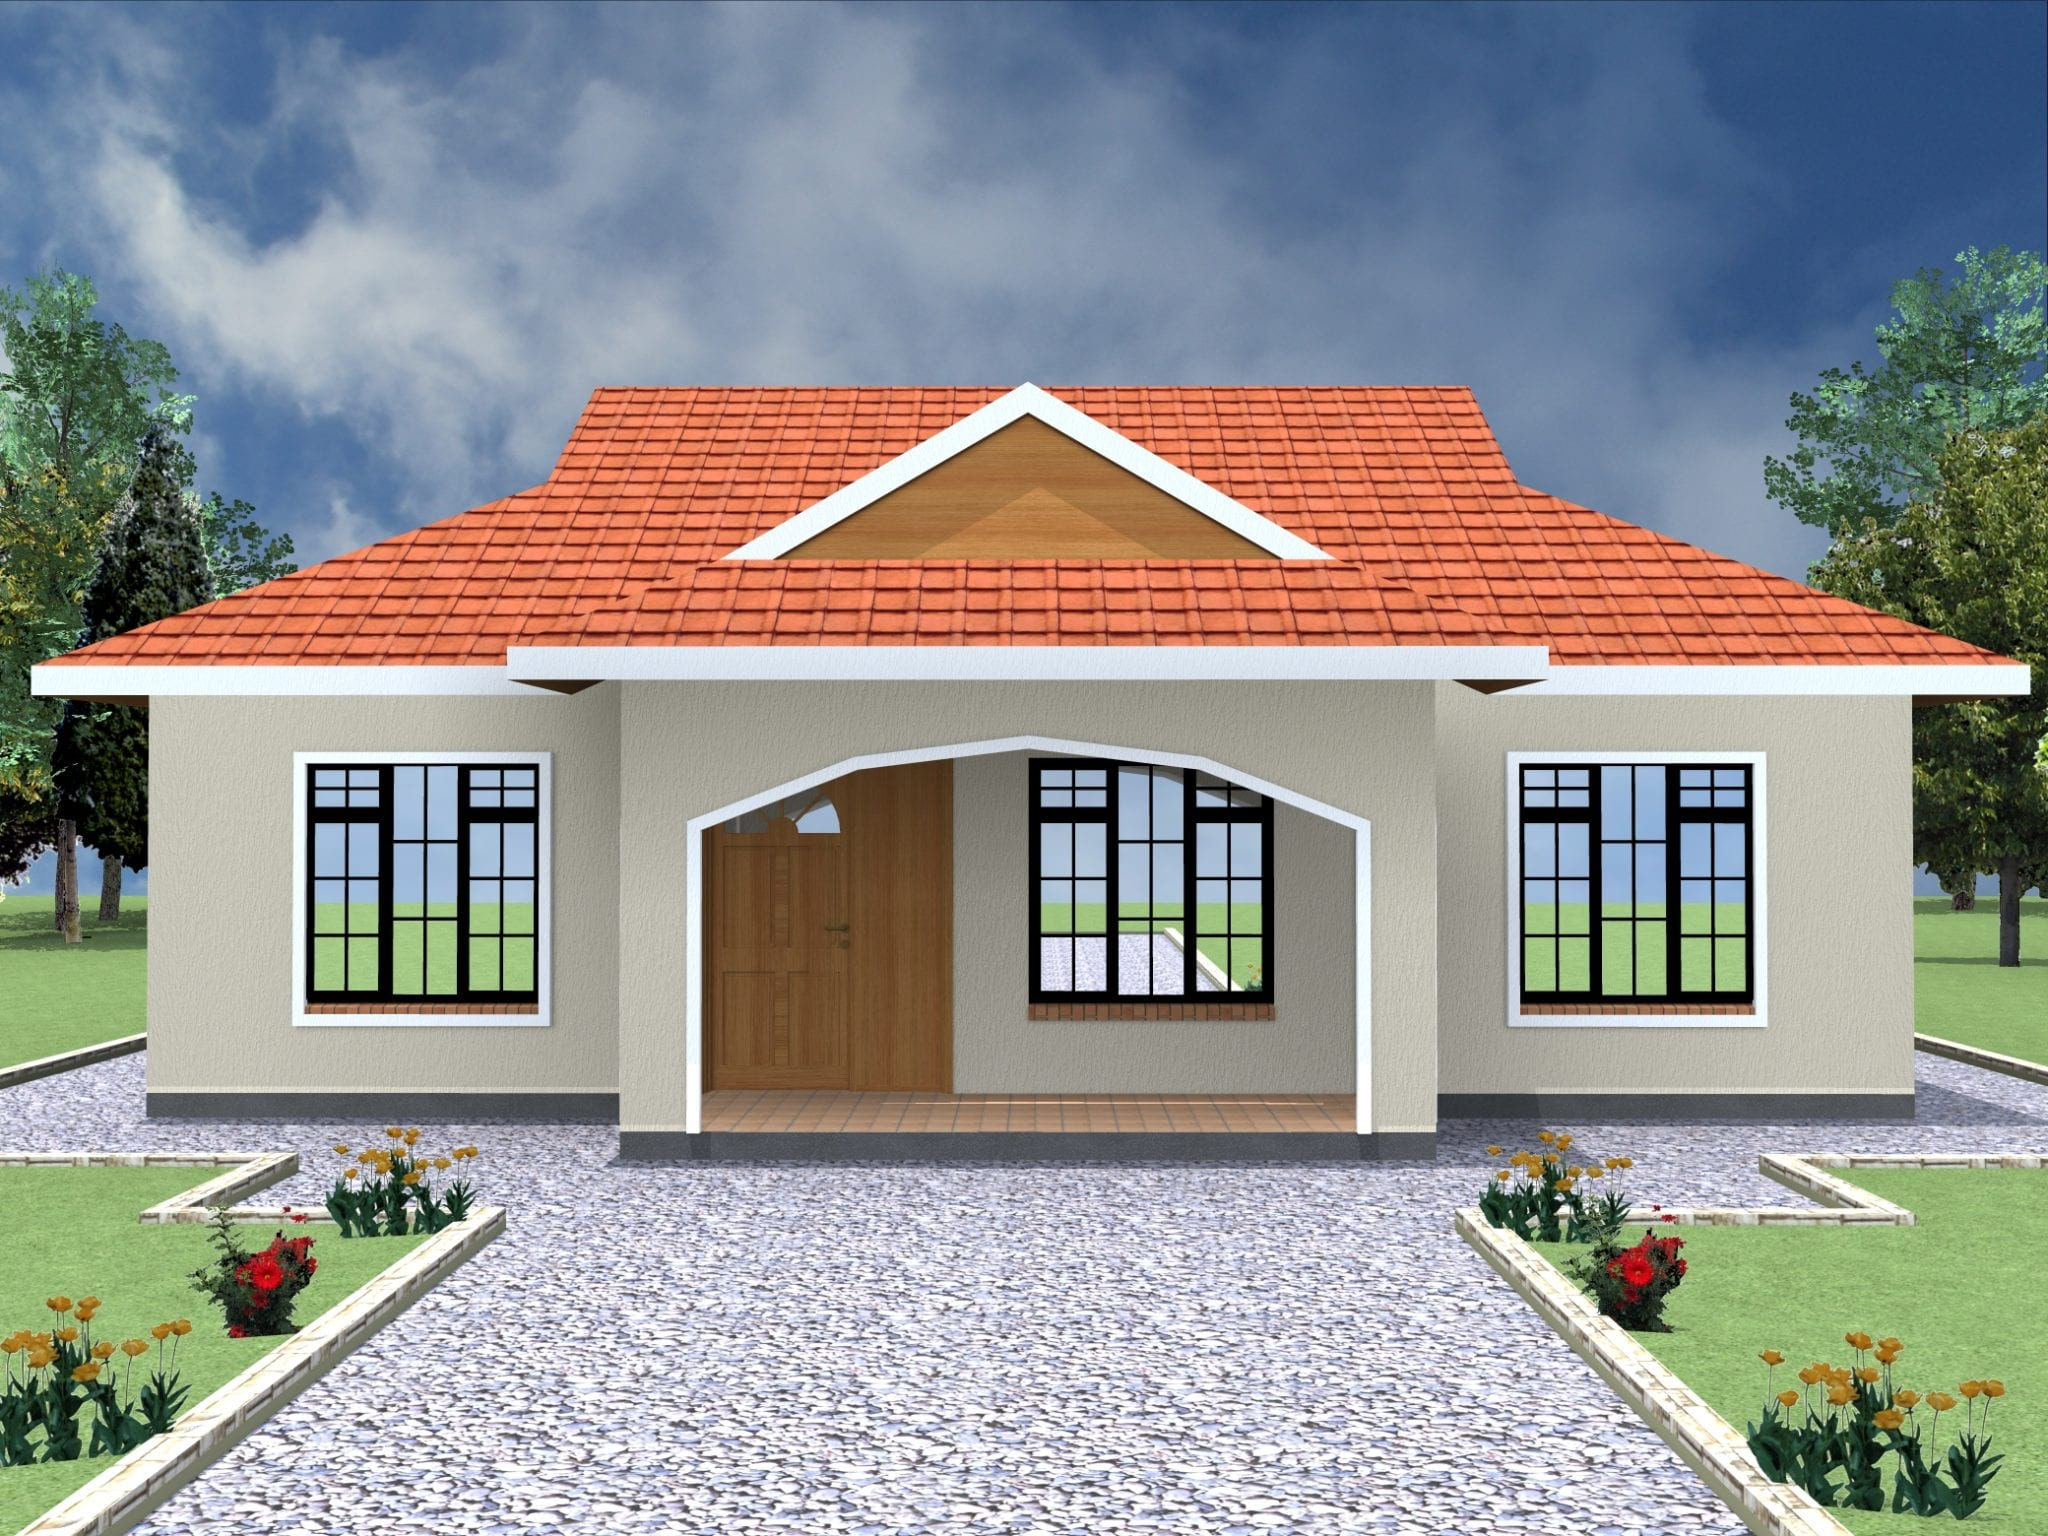 2 bedroom home plans simple 2 bedroom house plans in kenya hpd consult 2837